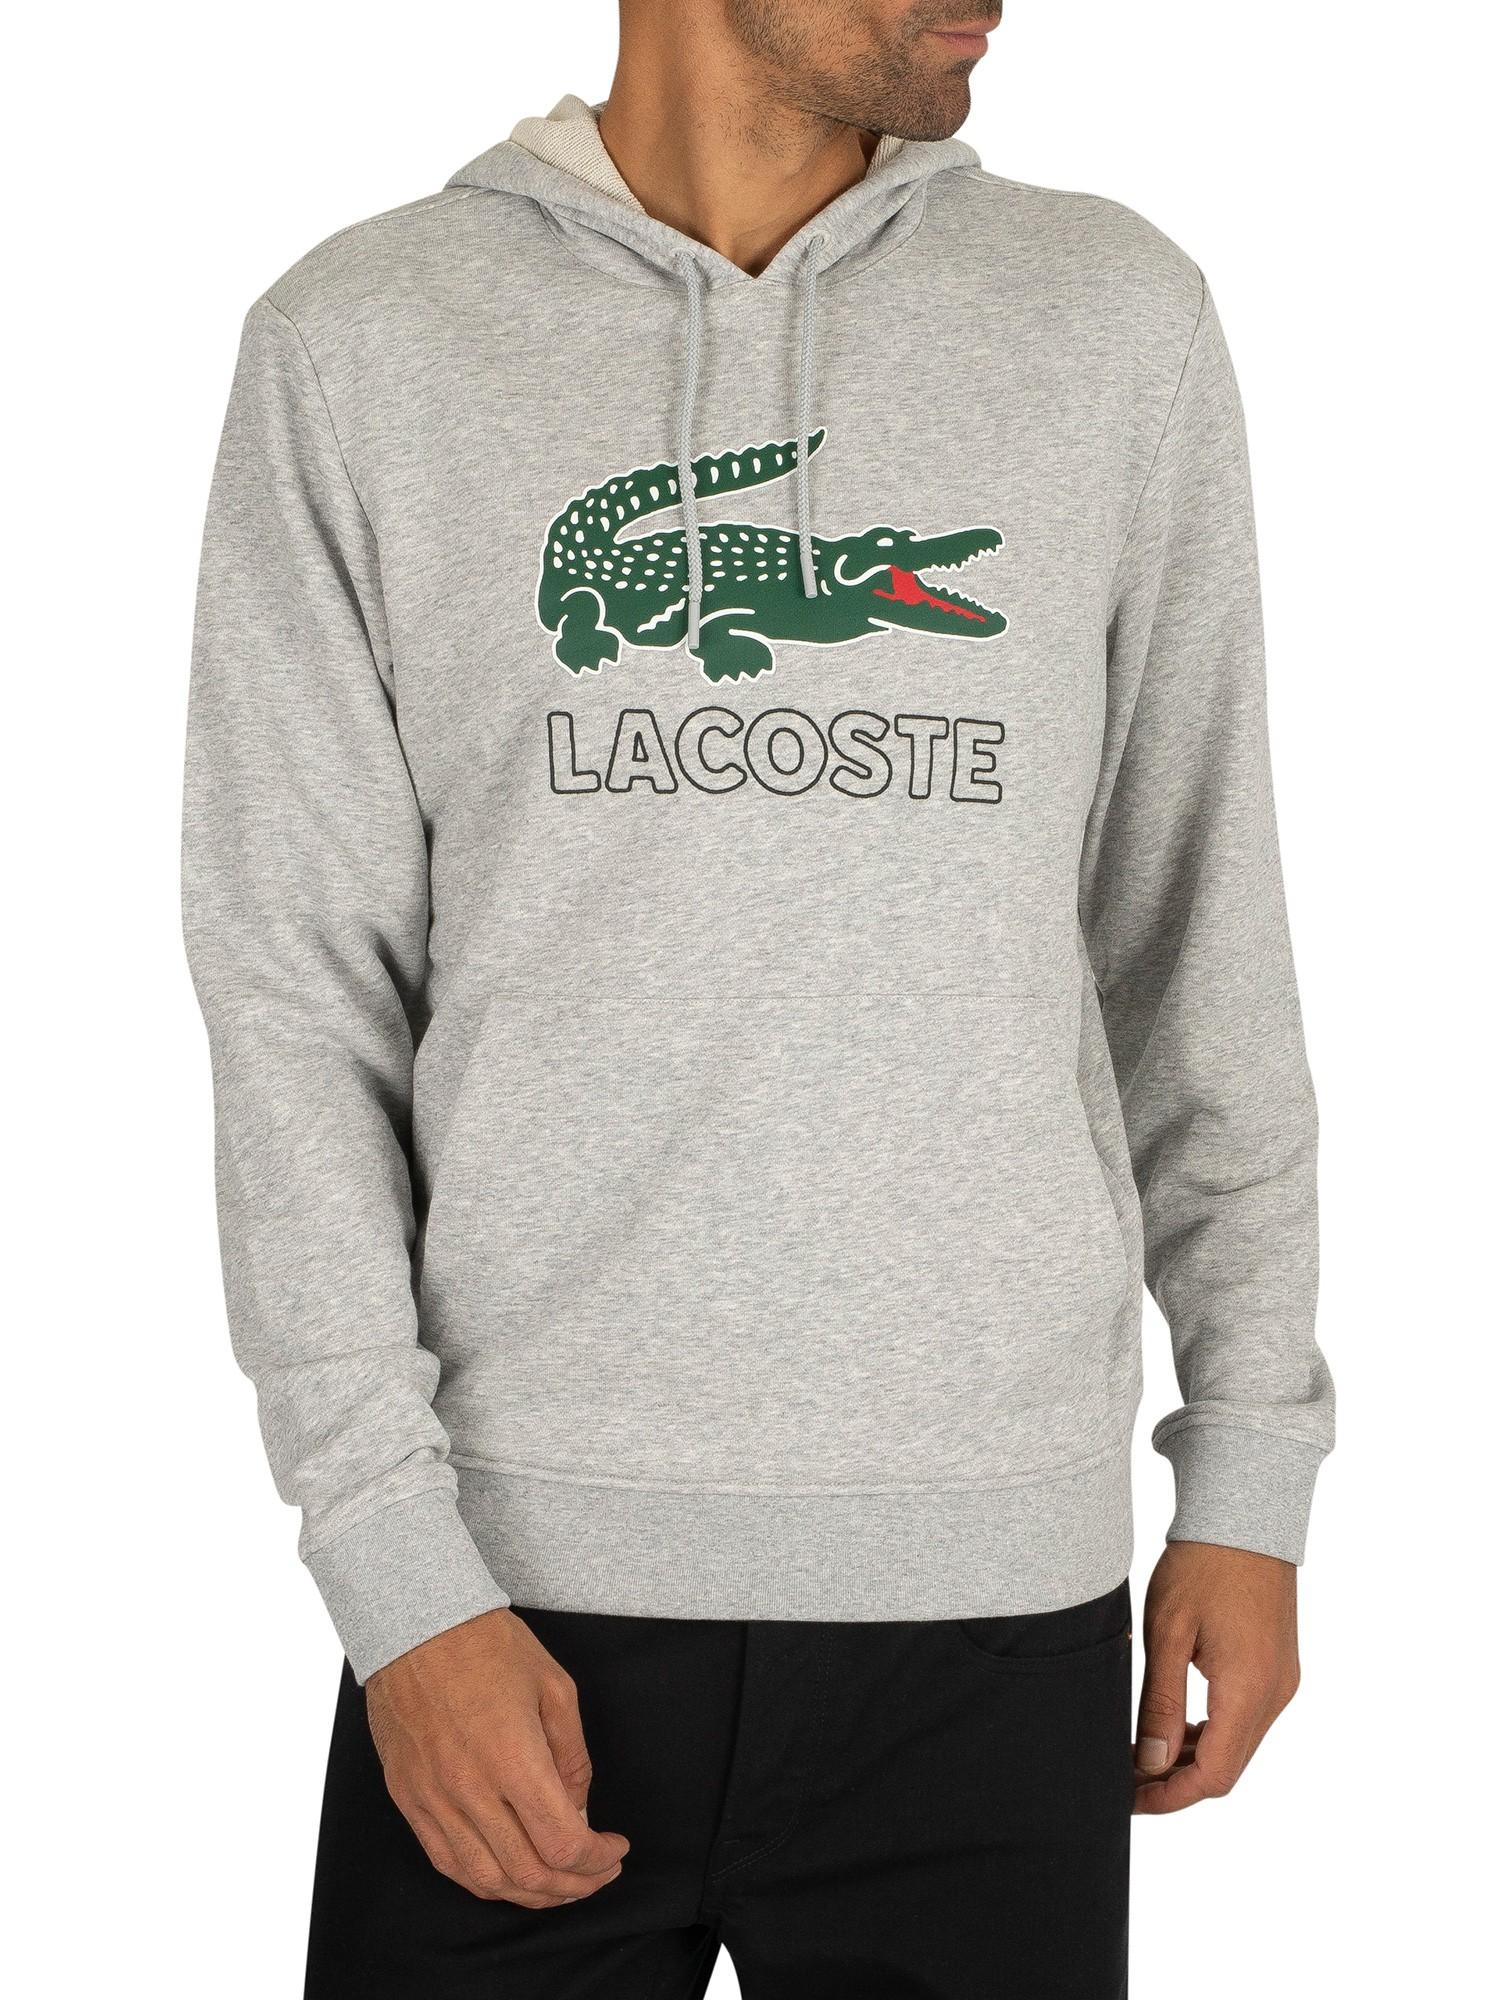 Lacoste Graphic Pullover Hoodie - Light Grey